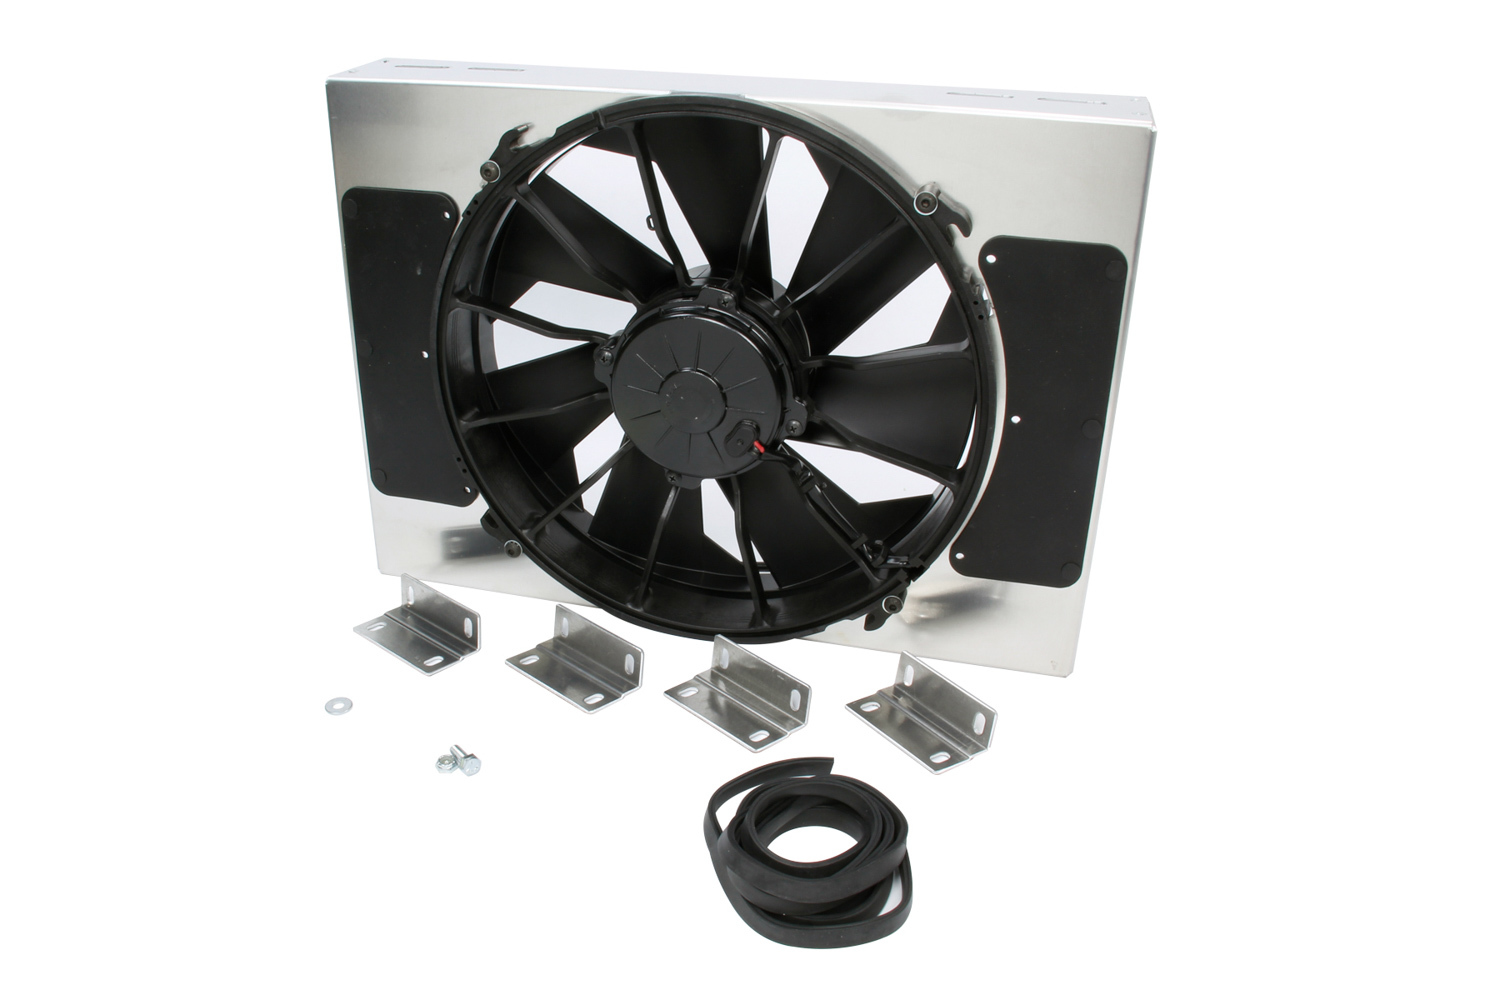 Derale 16814 Electric Cooling Fan, HO RAD, 12 in Fan, Puller, 2000 CFM, Curved Blade, 18 x 13 in, 4 in Thick, Aluminum Shroud, Plastic, Kit